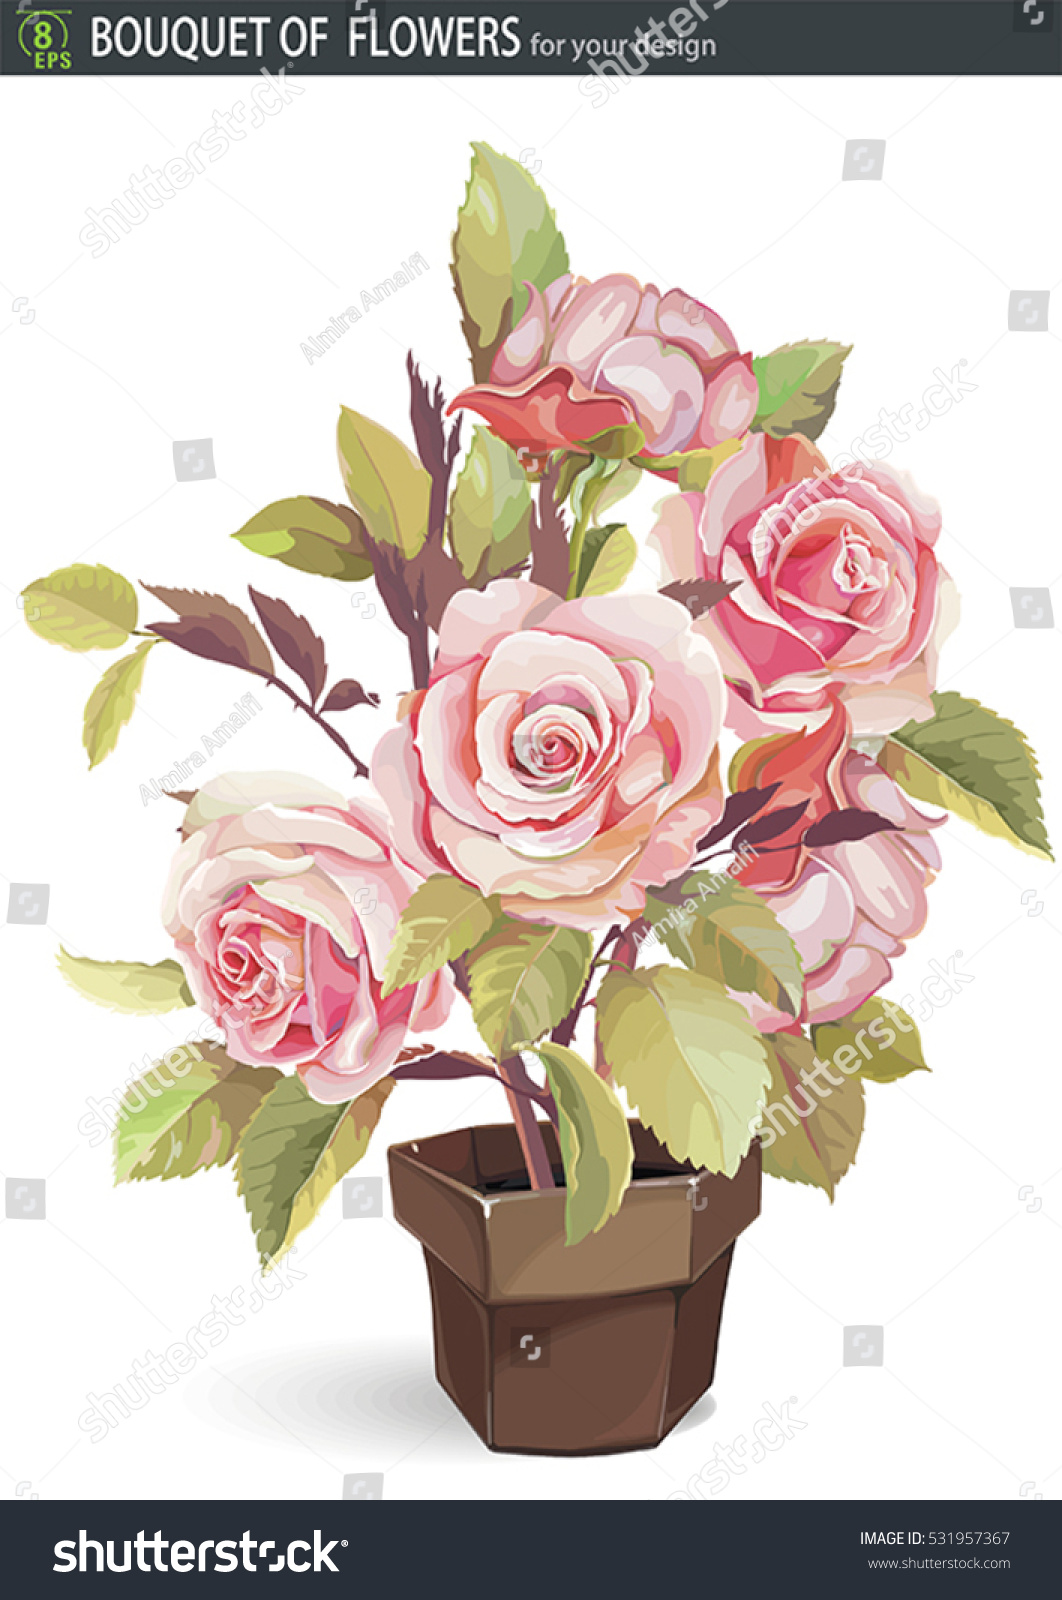 Drawings Romantic Floral Bouquets Retro Flowers Stock Vector